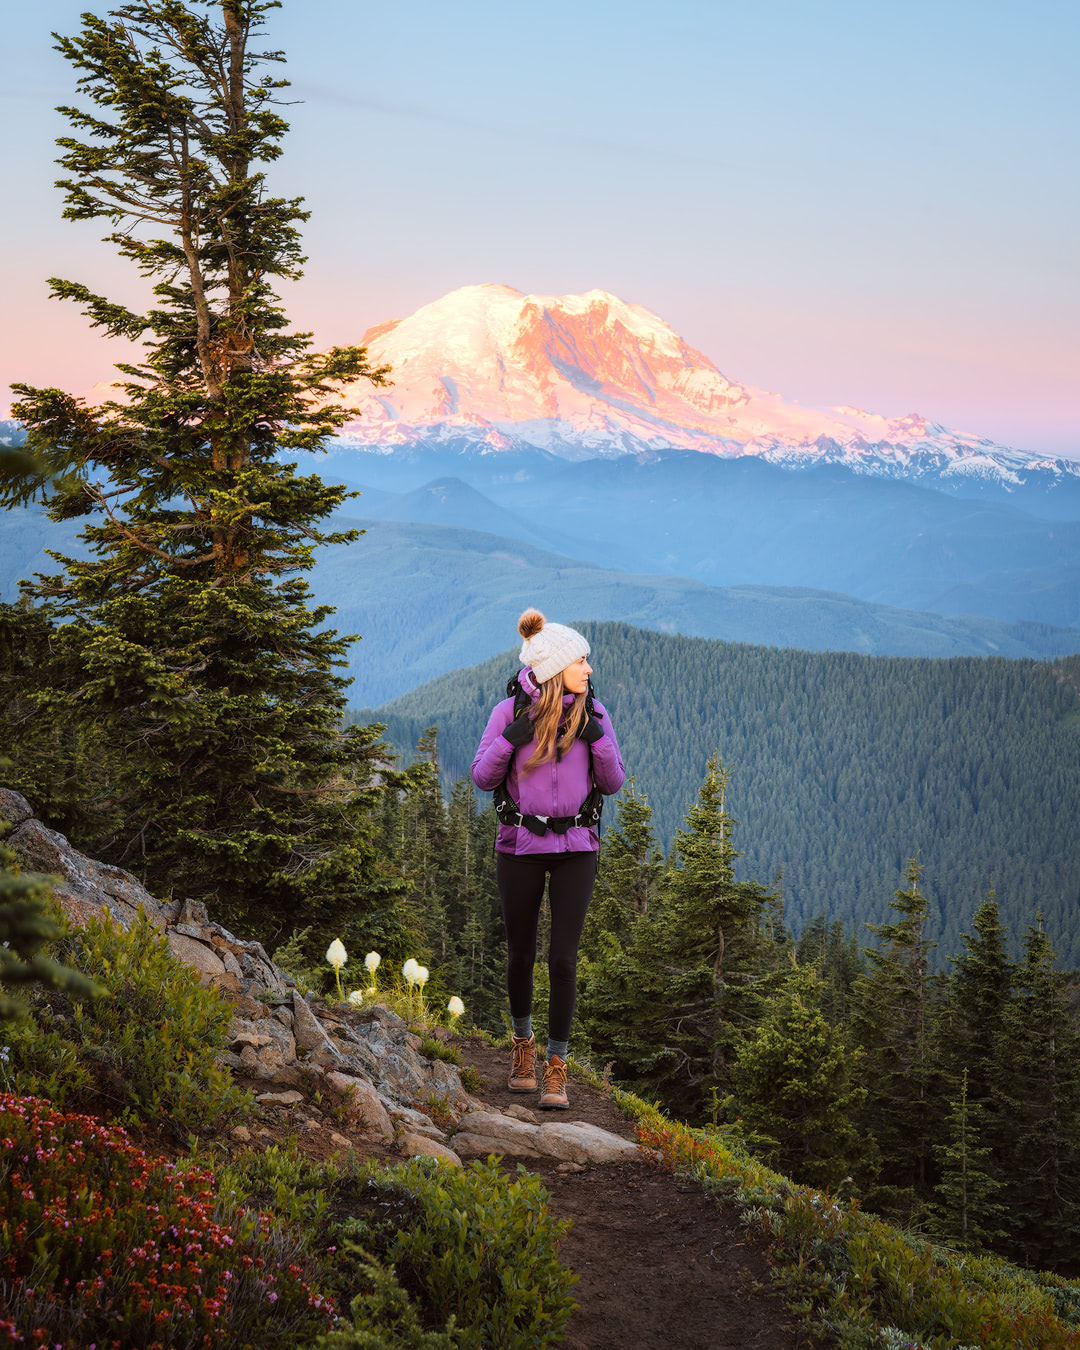 How To Get Over Your Fears of First Time Backcountry Camping - Mount Rainier